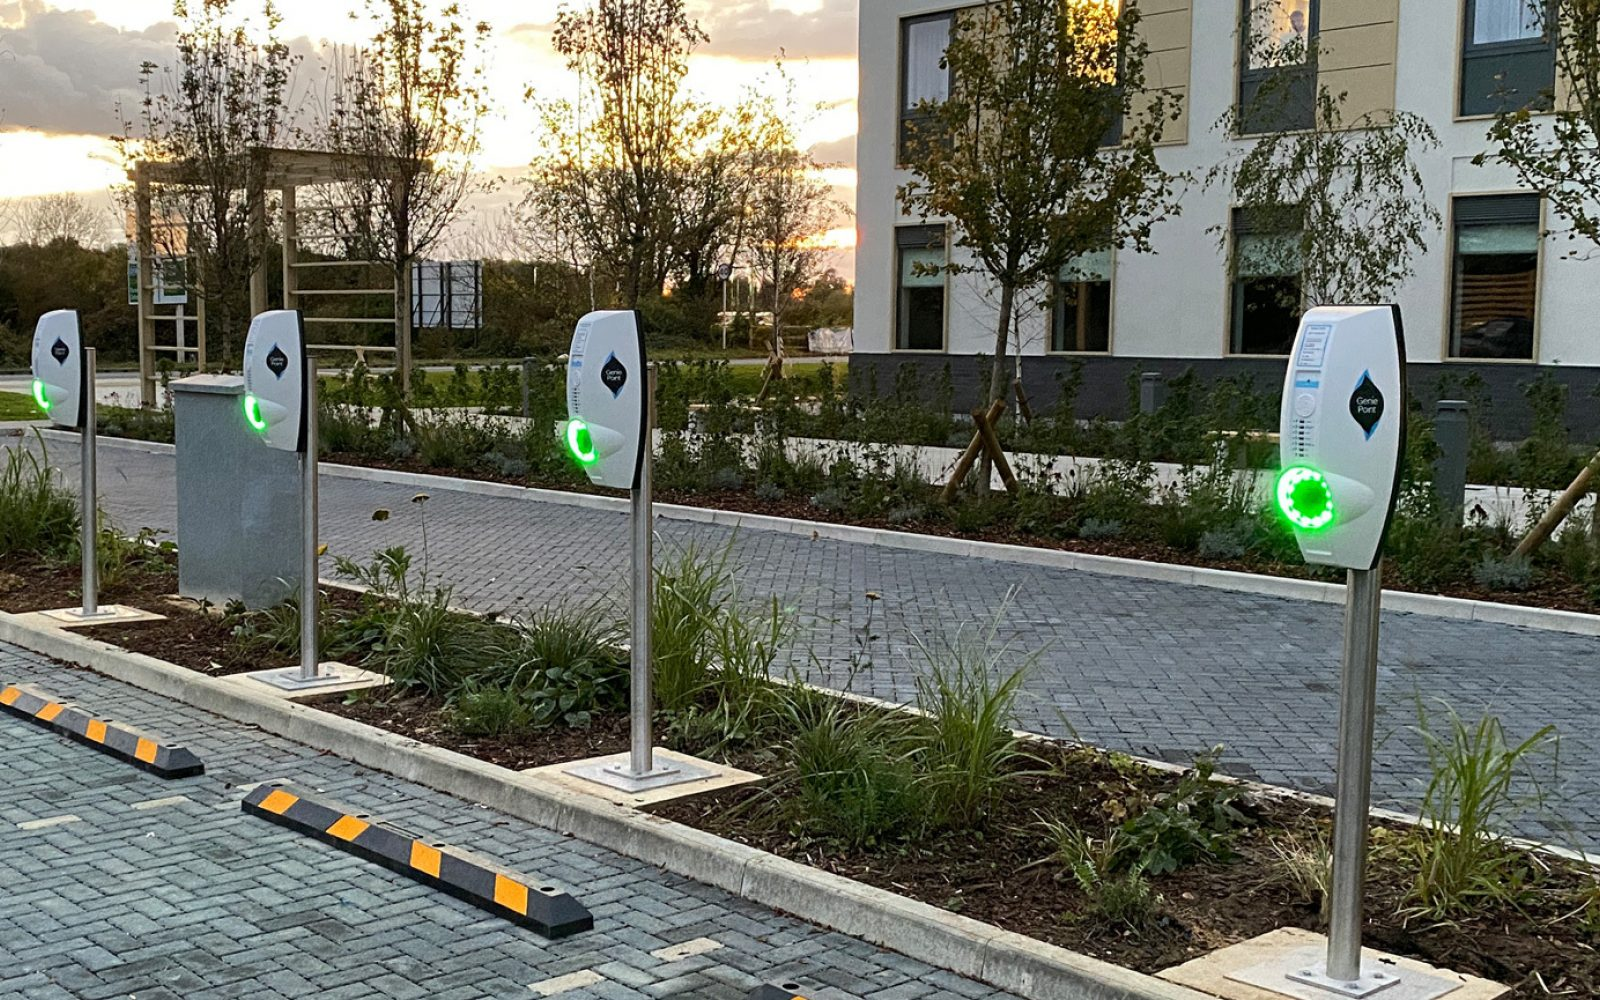 EQUANS recently landed a deal with NatWest for the installation of EV chargers. Image: EQUANS.